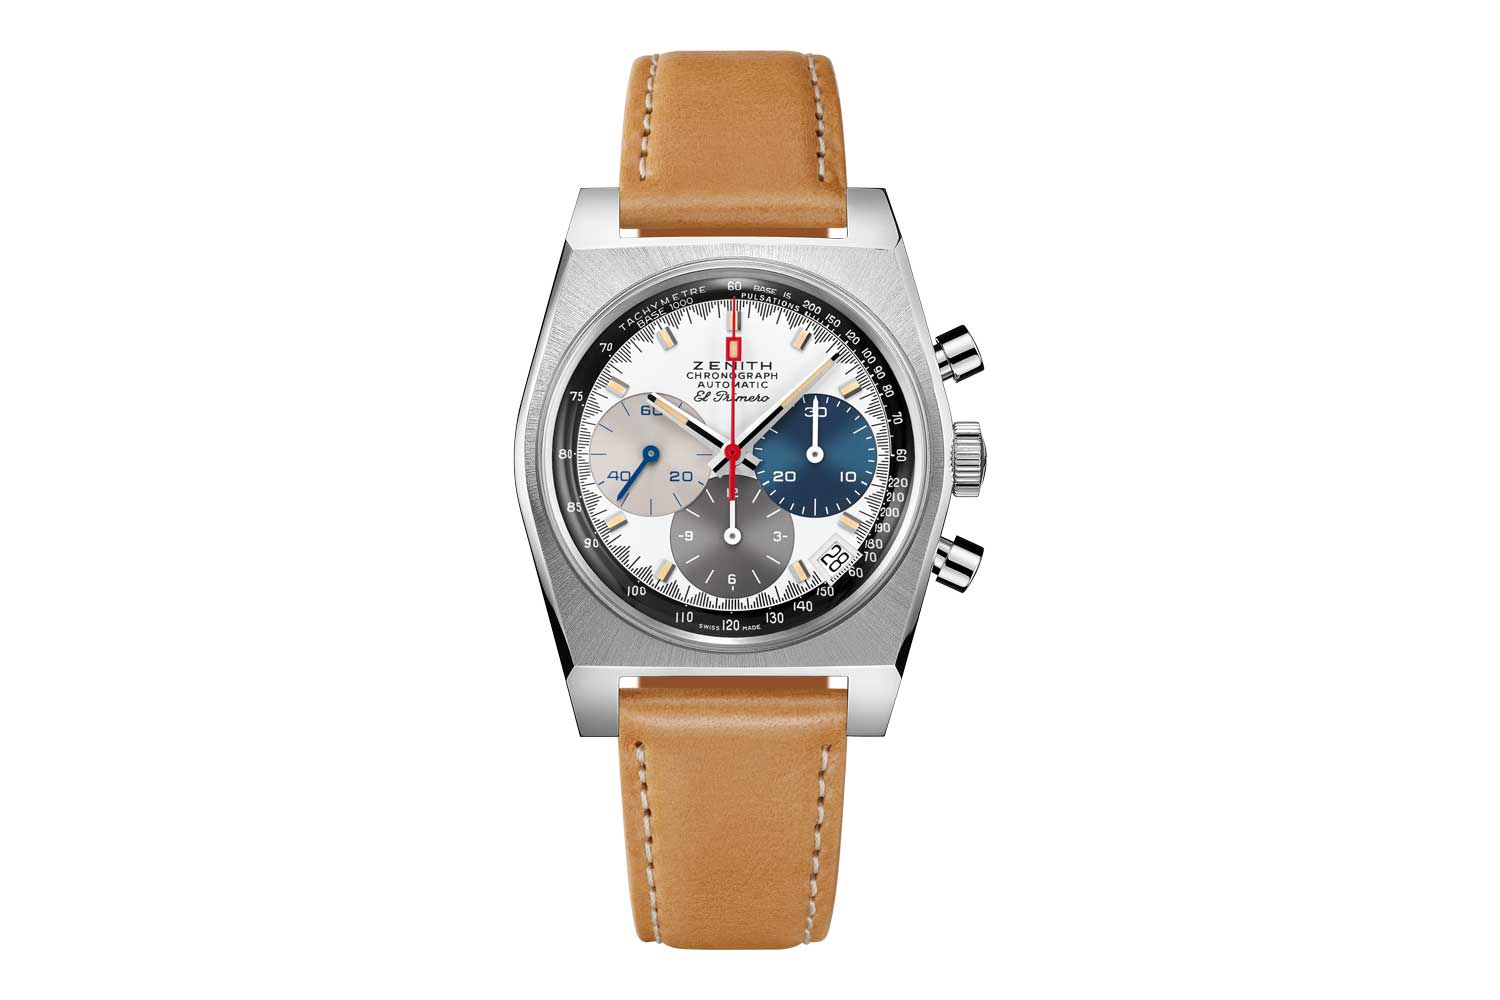 The 2021 Zenith Chronomaster Revival A3817 seen here fitted on a a light brown calfskin leather strap with protective rubber lining and stainless steel pin buckle